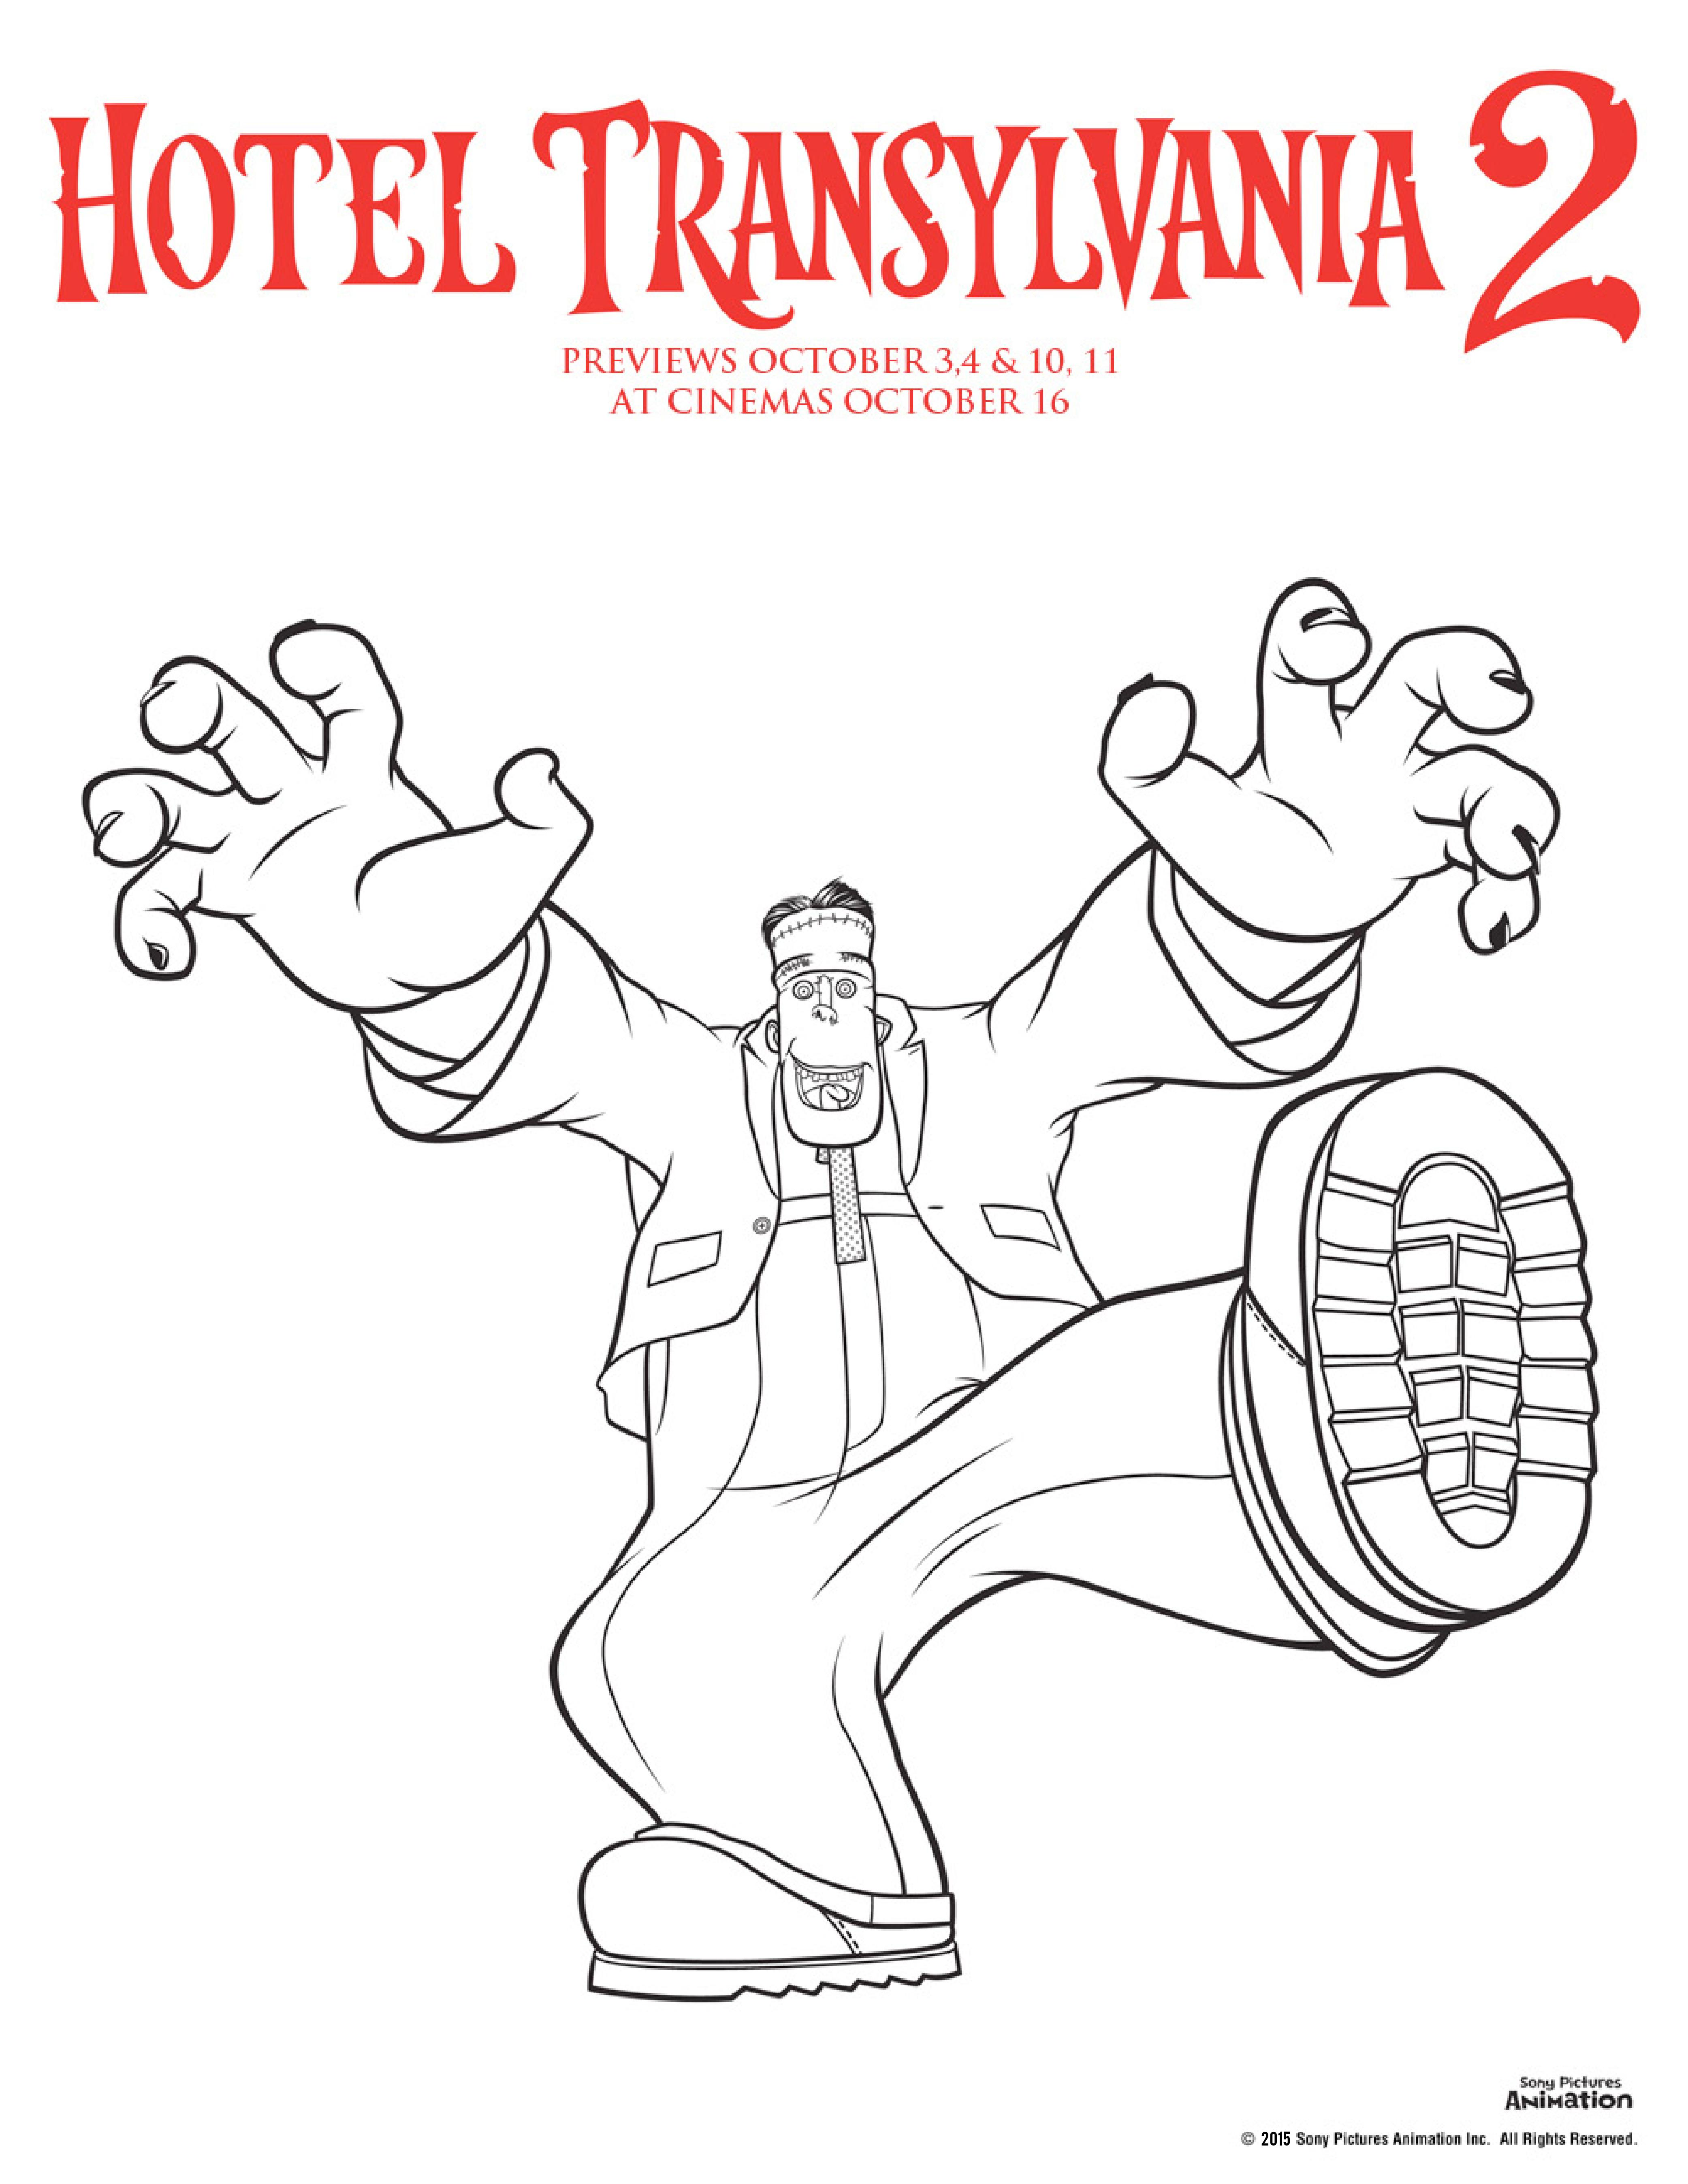 Hotel transylvania 2 colouring pages frankenstein colouring sheet, perfect for Halloween